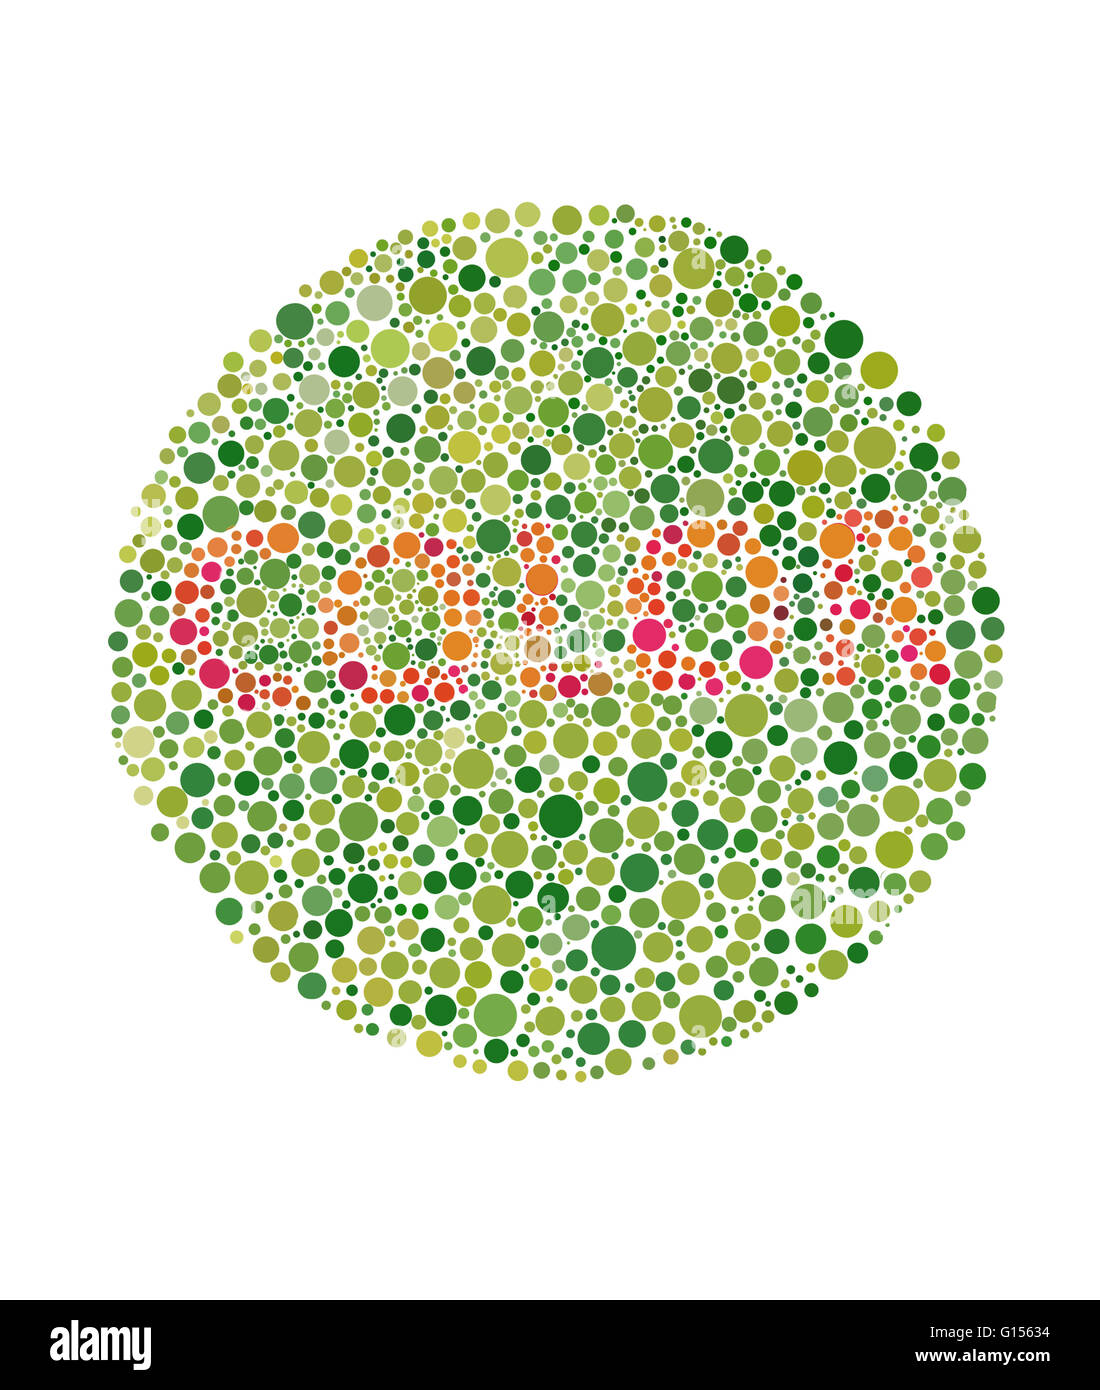 Ishihara Test Stock Photos & Ishihara Test Stock Images - Alamy